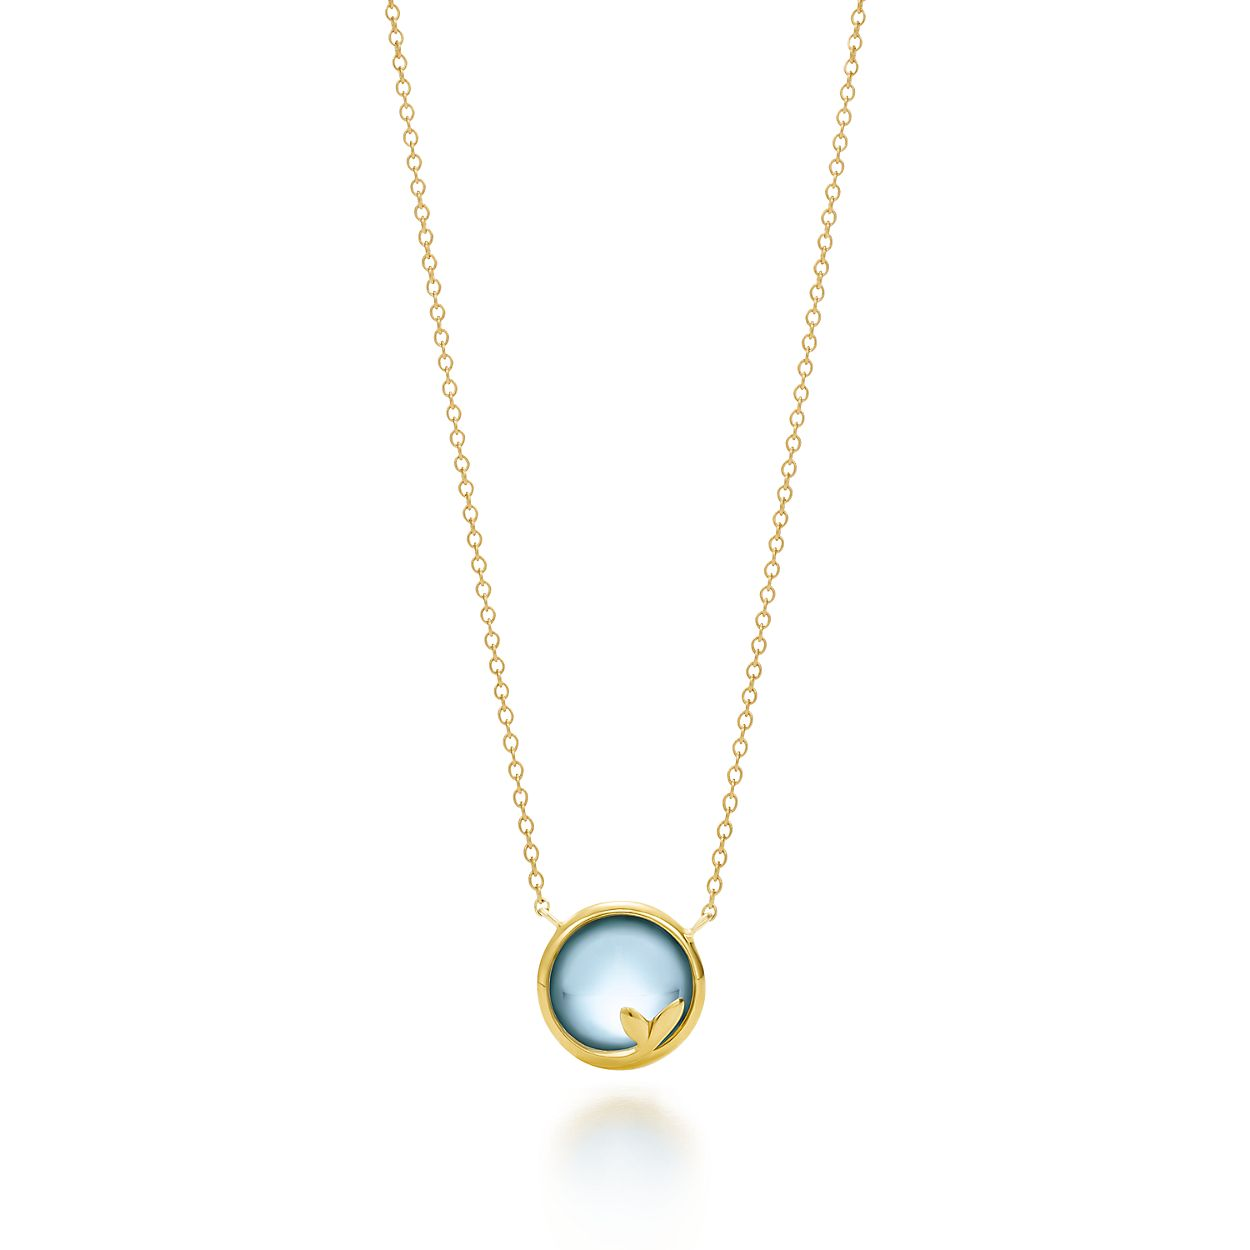 Paloma Picasso Olive Leaf pendant in 18k gold with a blue topaz - Size Tiffany & Co. 2uBghNNSYd